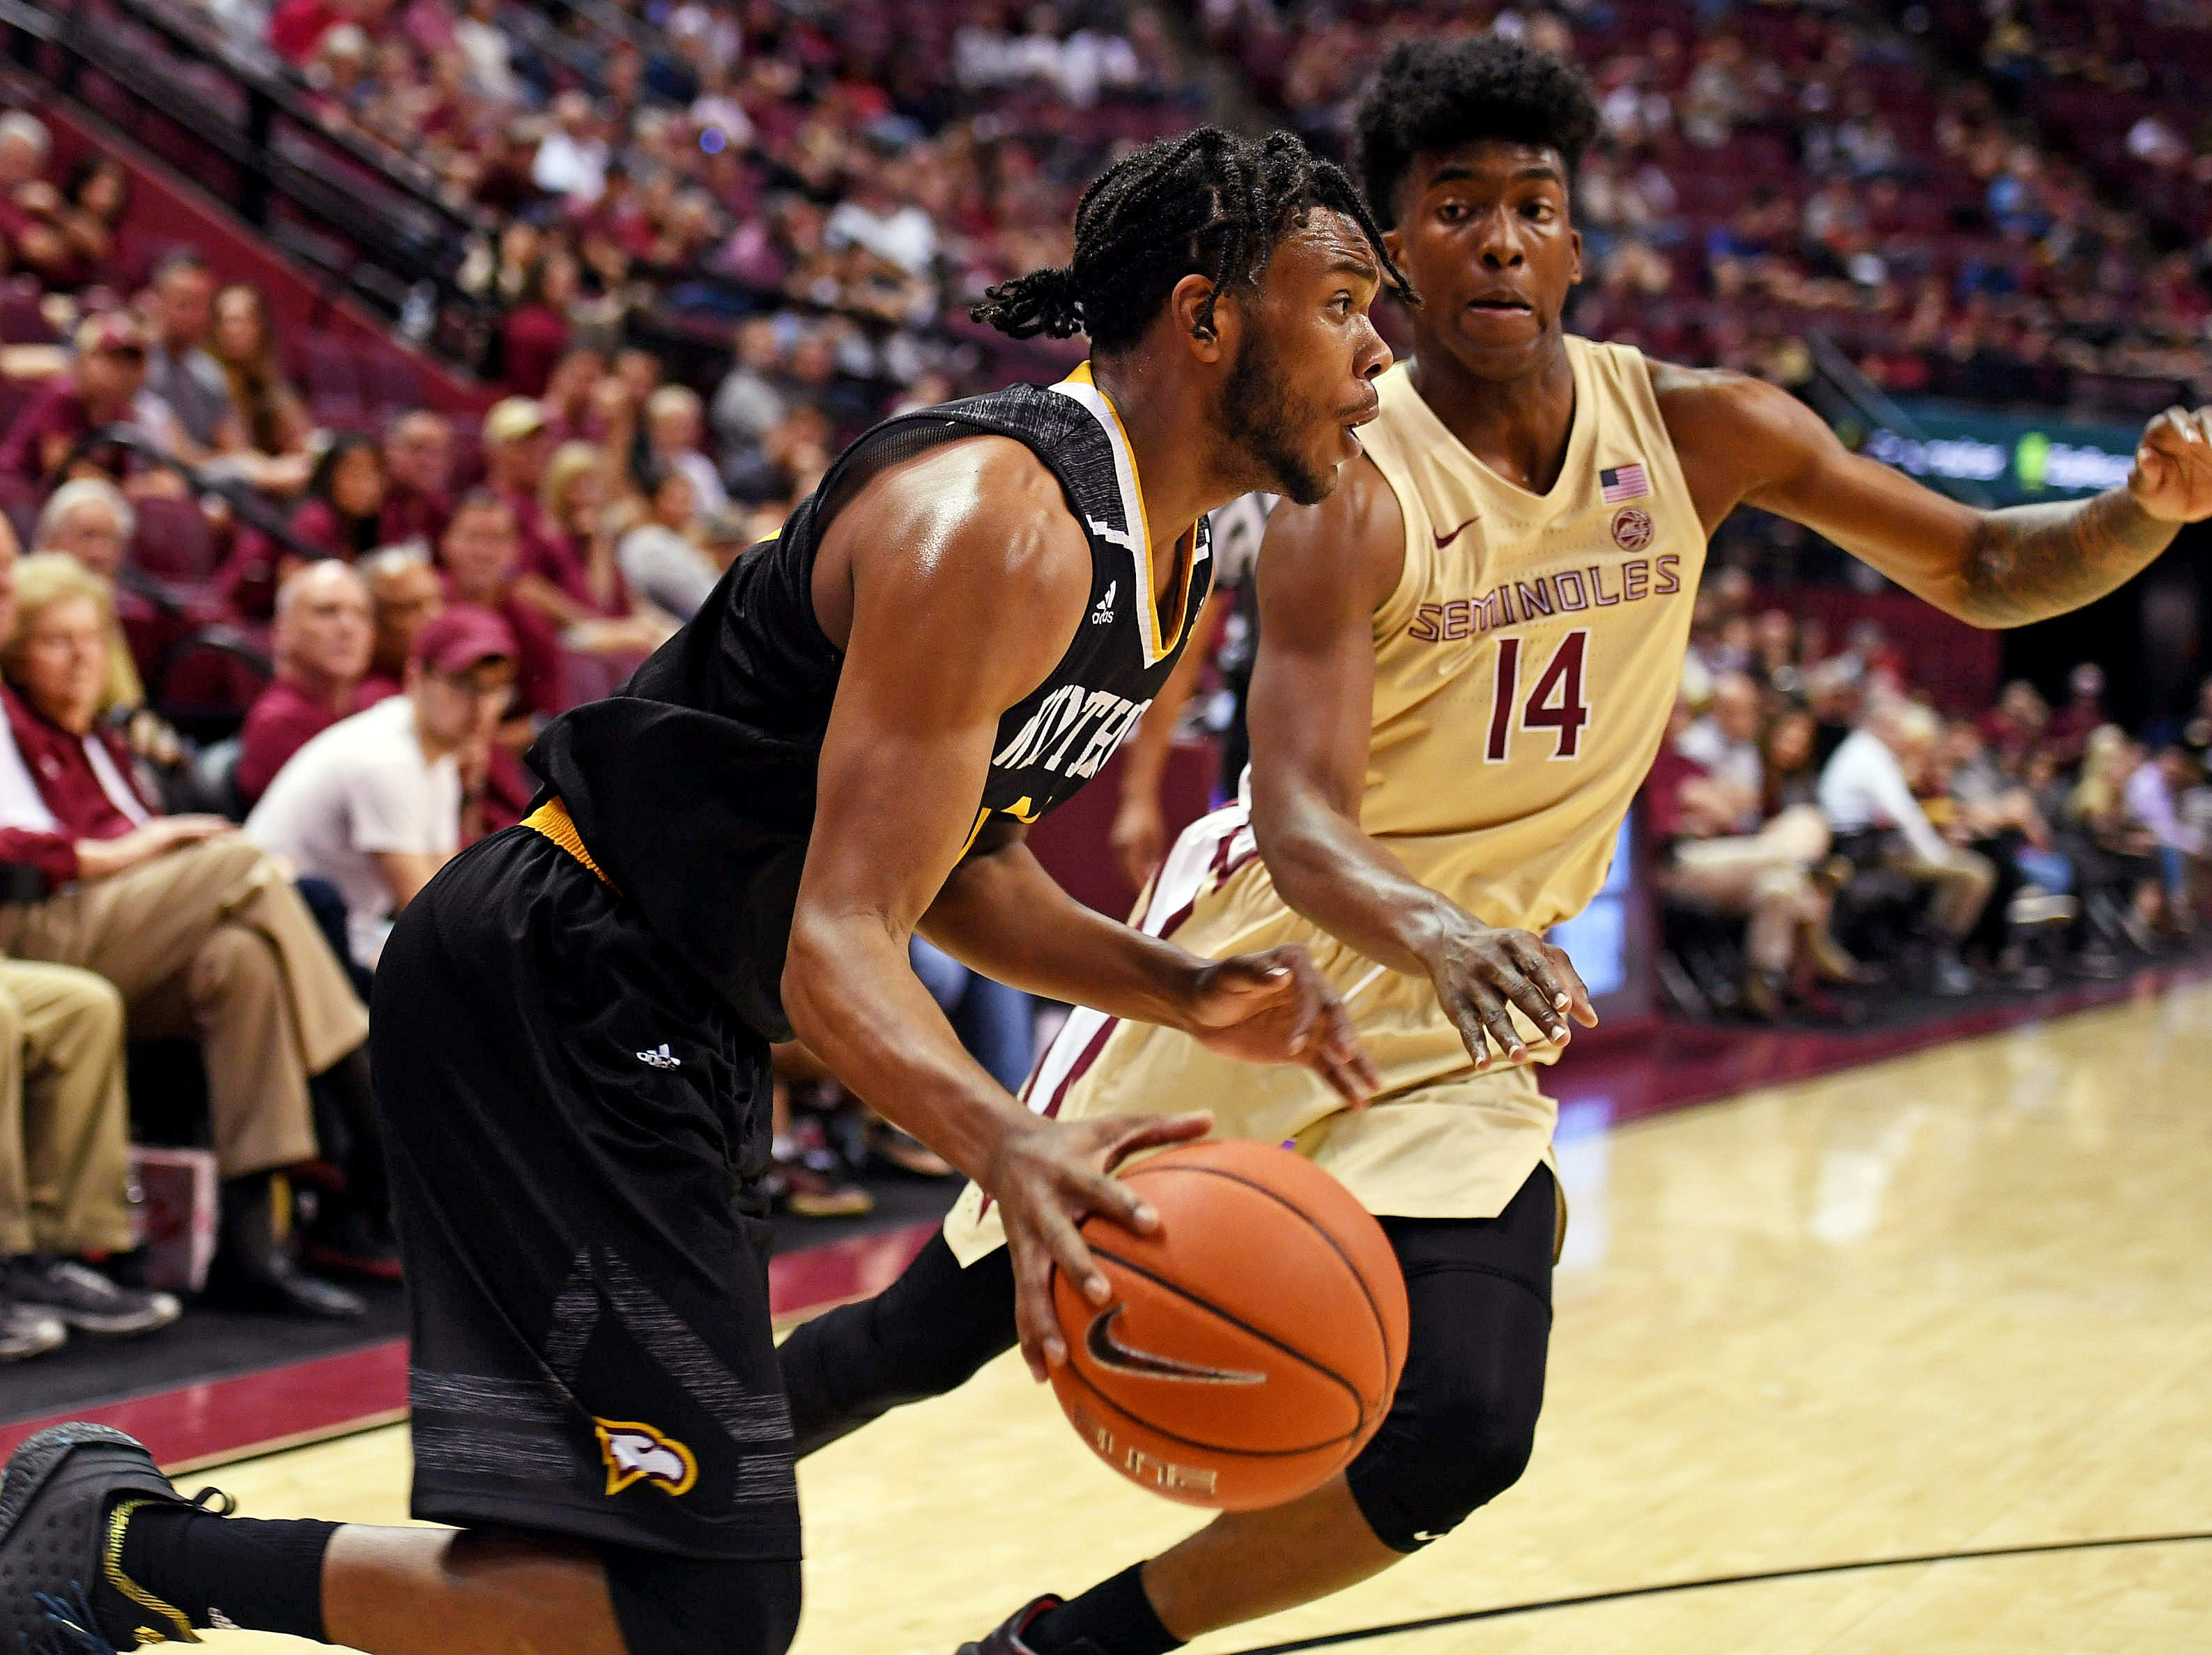 Jan 1, 2019; Tallahassee, FL, USA; Winthrop Eagles guard Charles Falden (11) dribbles the ball as Florida State Seminoles guard Terance Mann (14) defends during the first half at Donald L. Tucker Center. Mandatory Credit: Melina Myers-USA TODAY Sports